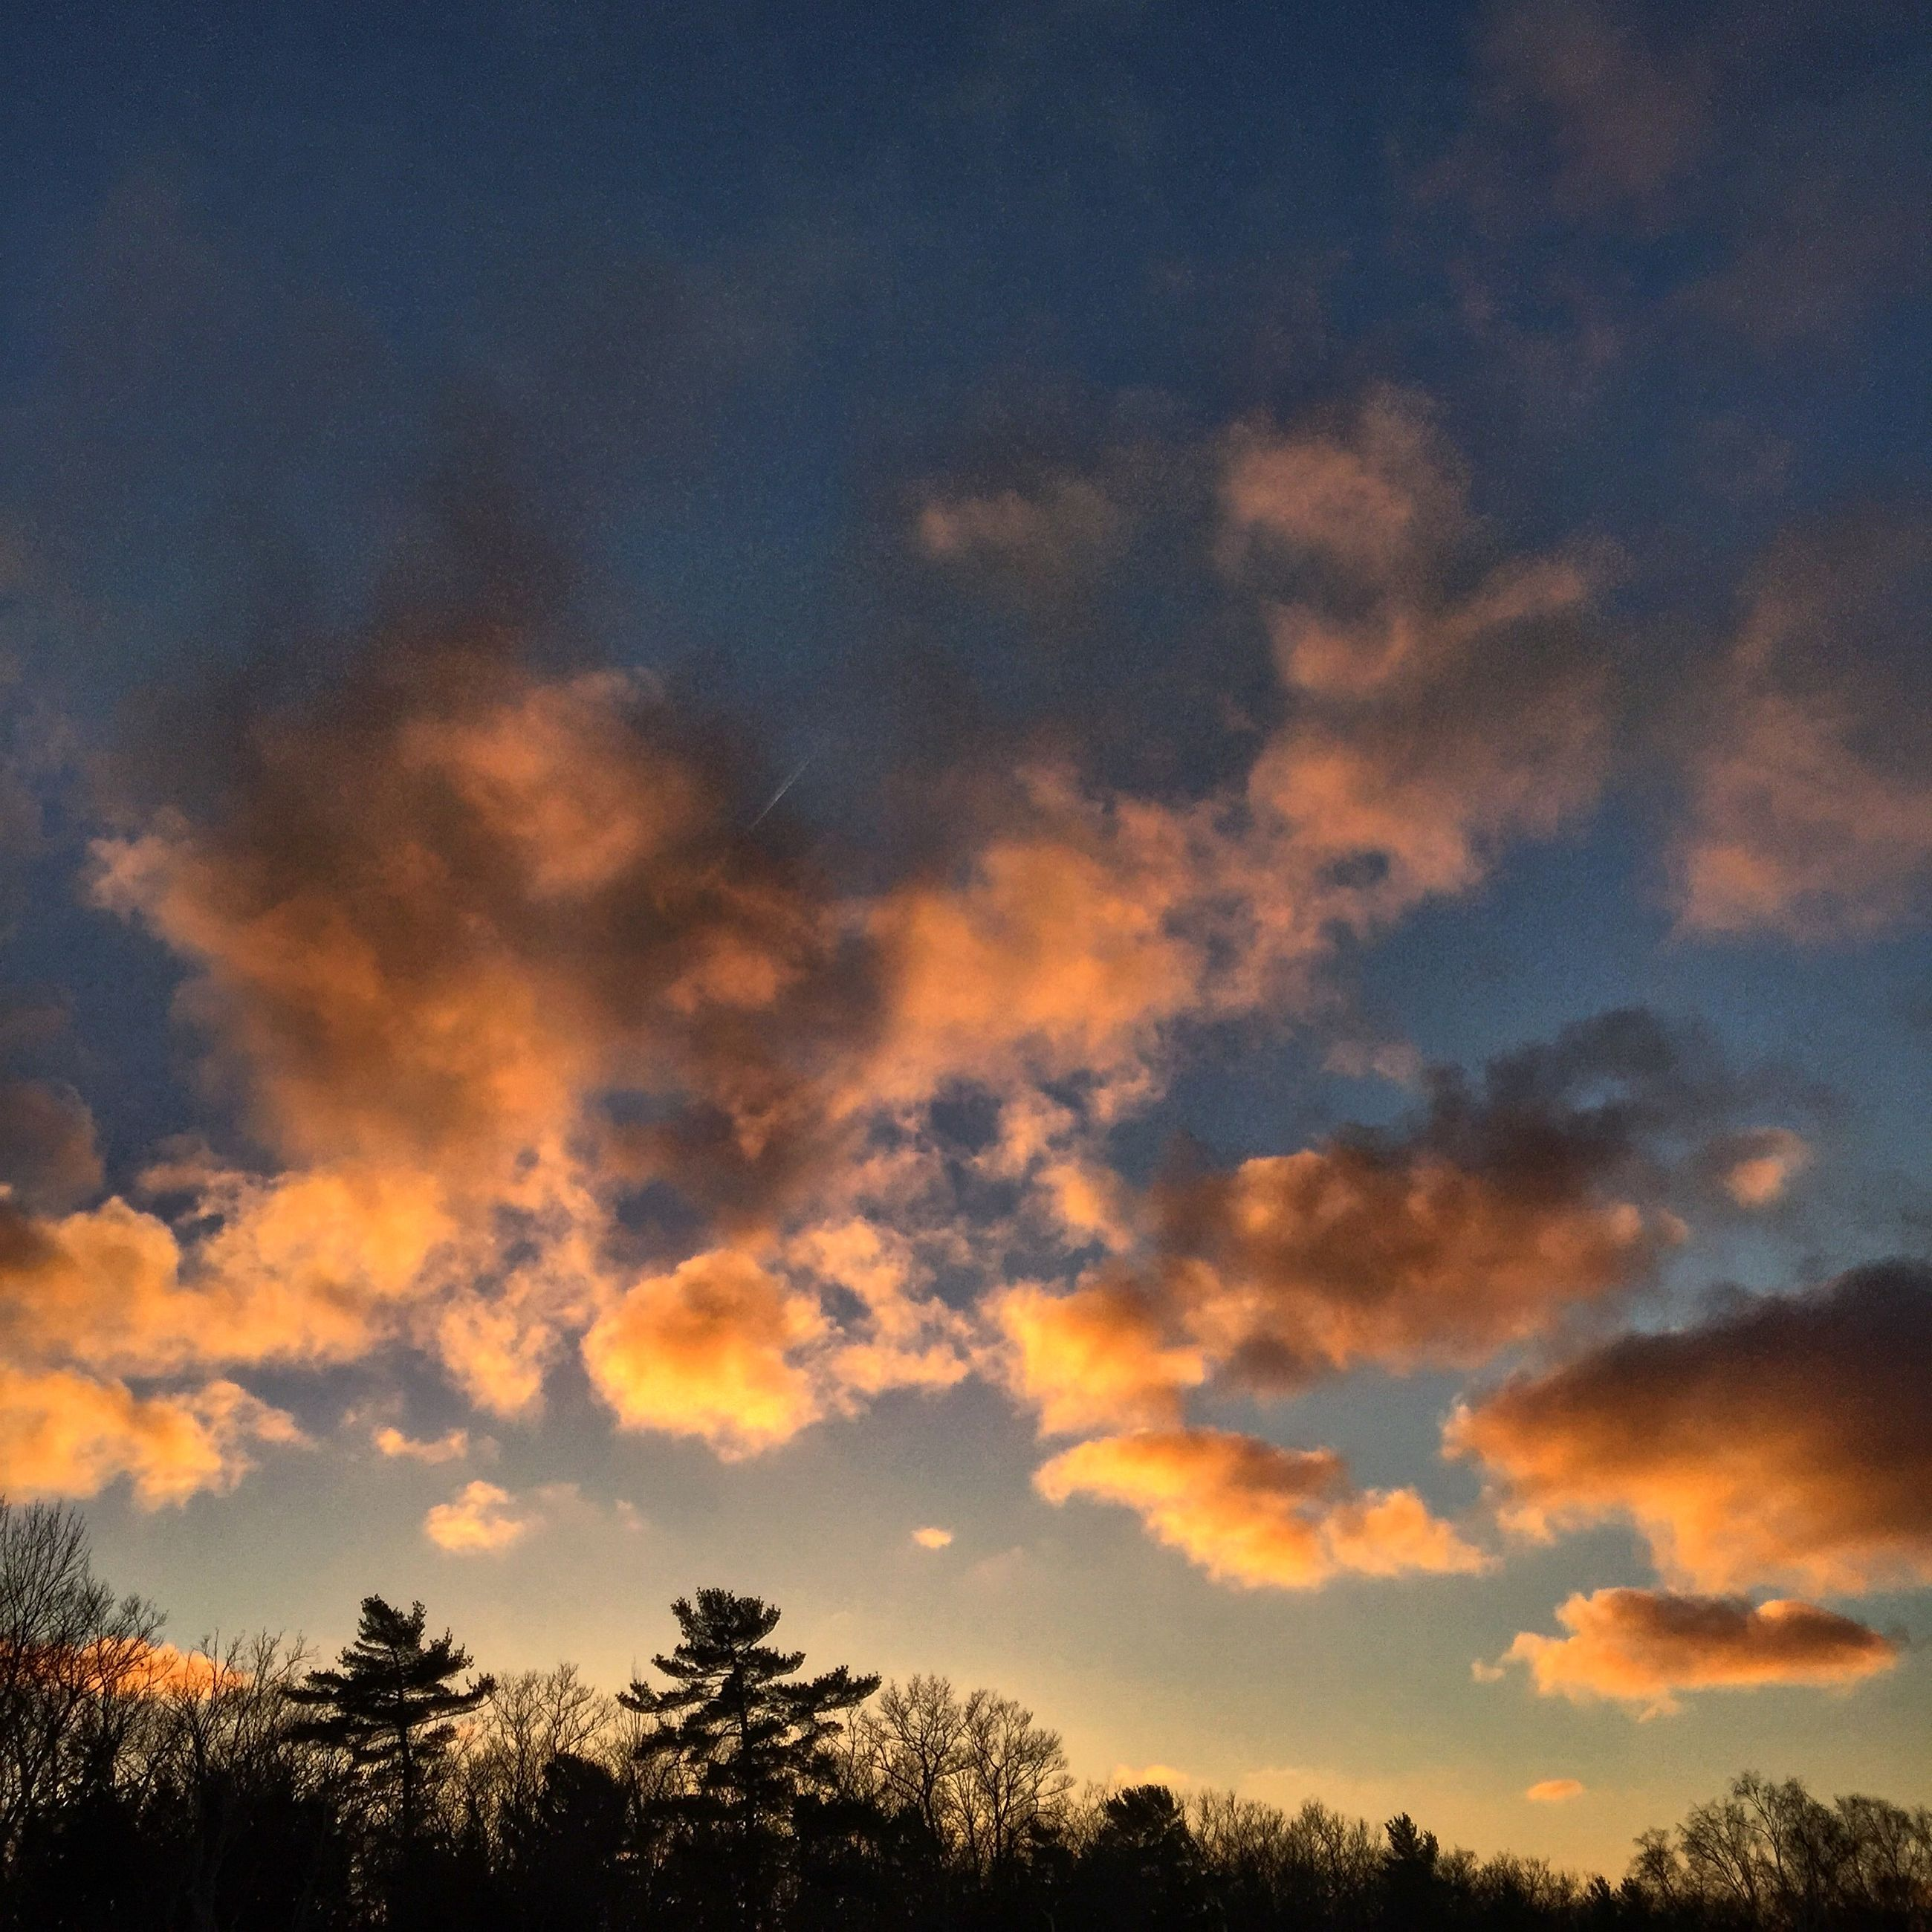 sunset, sky, low angle view, tree, silhouette, beauty in nature, tranquility, scenics, cloud - sky, tranquil scene, nature, orange color, idyllic, dramatic sky, cloudy, cloud, growth, outdoors, high section, no people